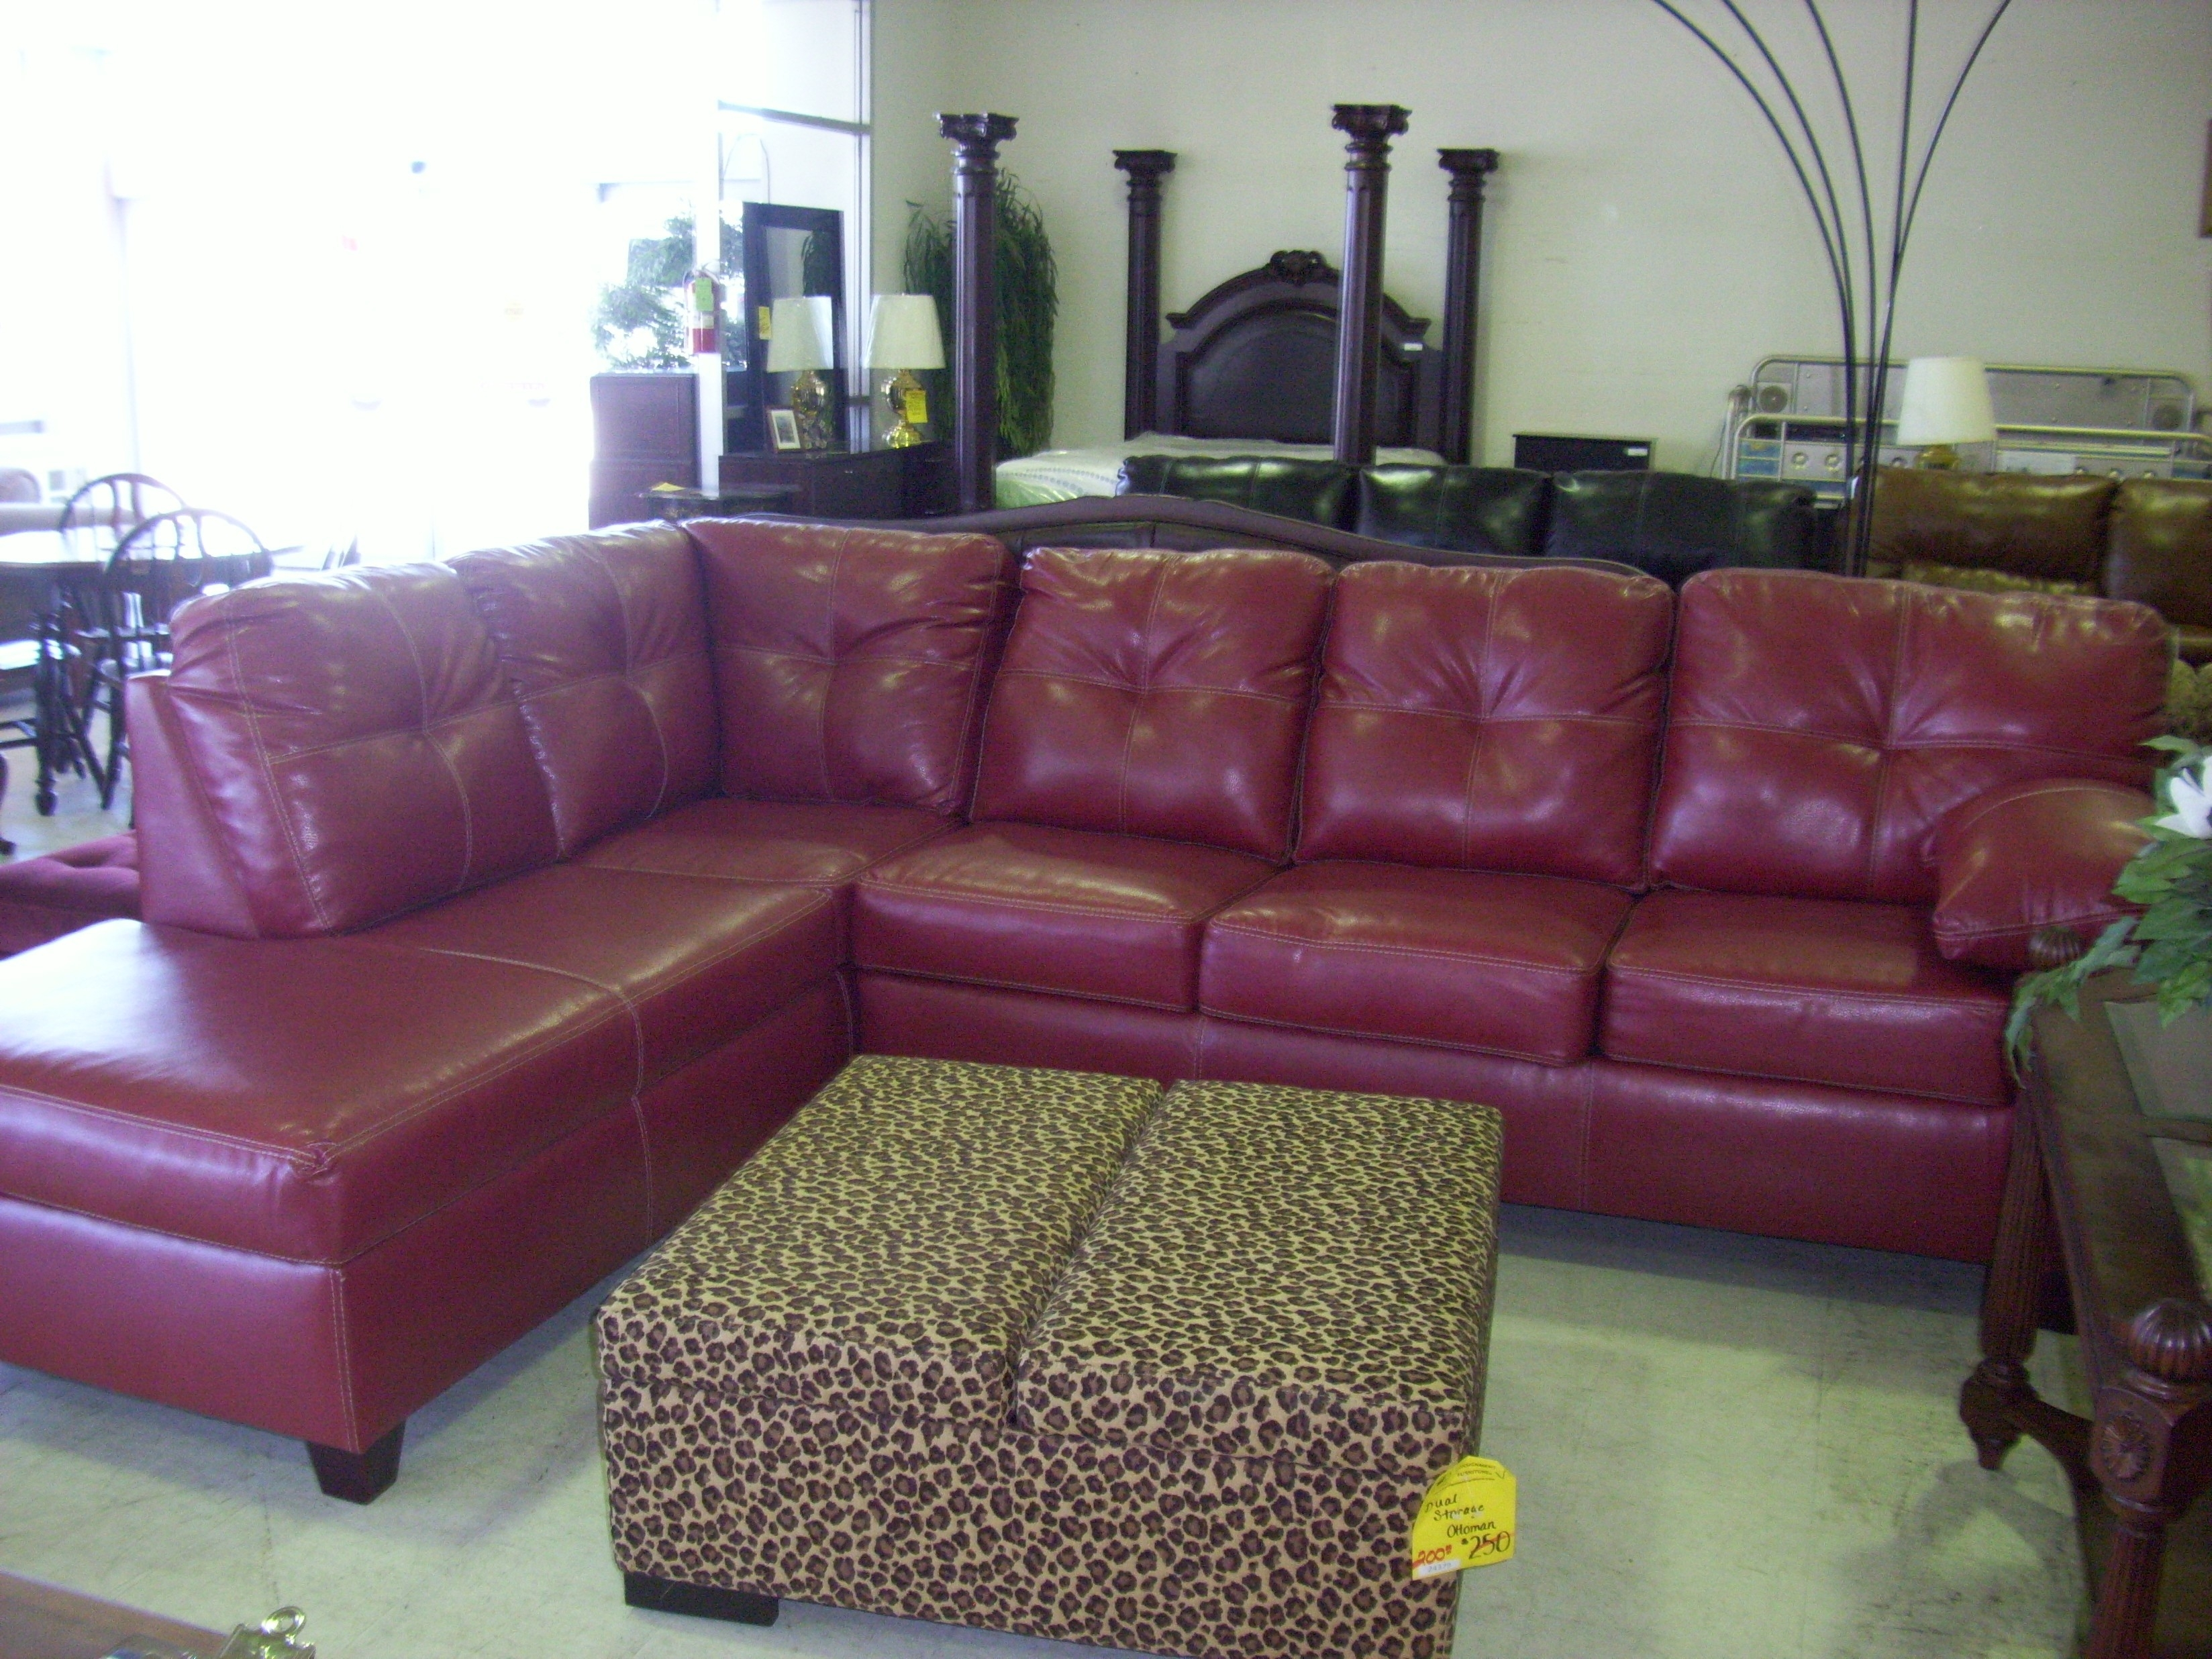 Living Room Decoration With Red Leather Sectional Sofa Feature L pertaining to Red Leather Sectional Sofas With Ottoman (Image 6 of 15)